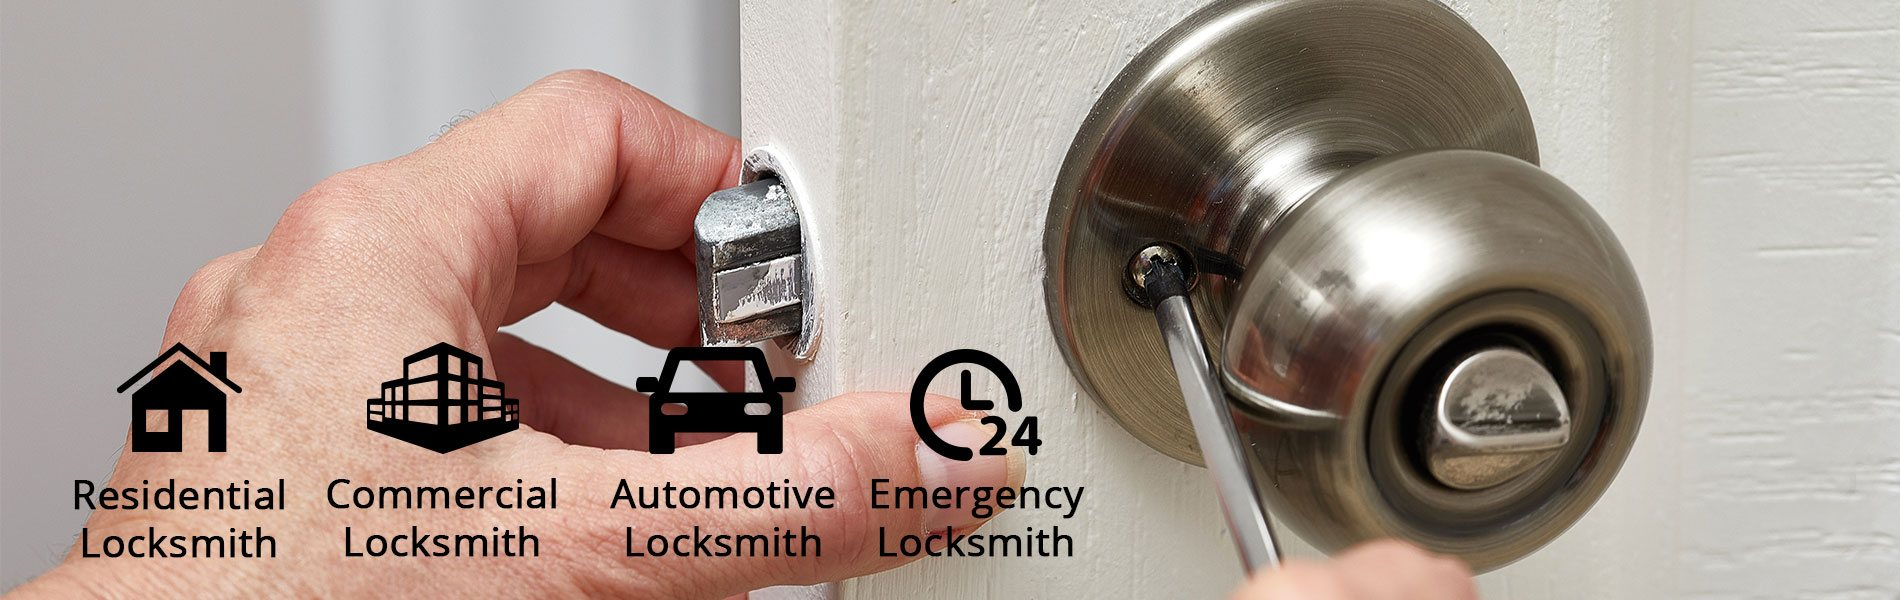 Lock Locksmith Services Willoughby, OH 440-226-5073